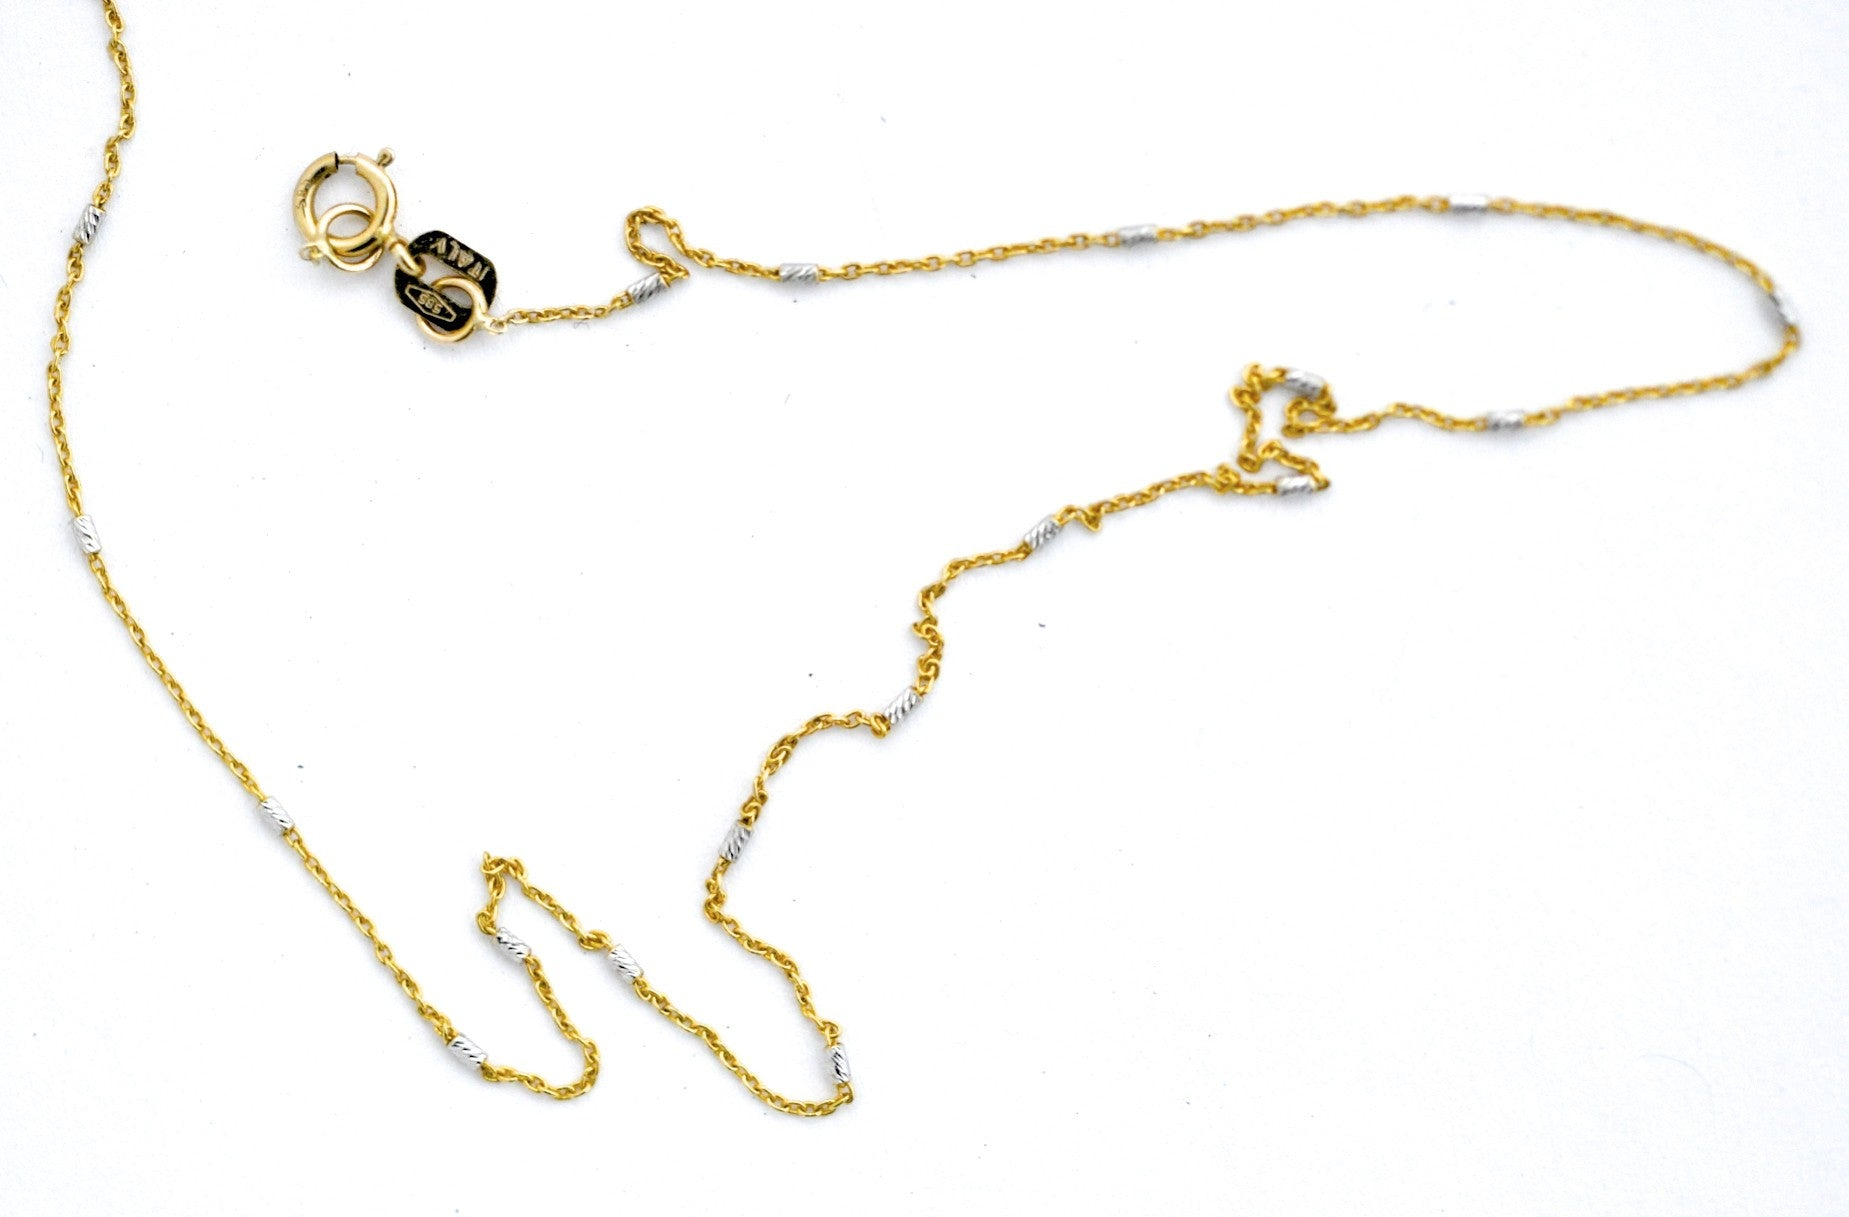 necklace / gold with 14k white gold stations very fine chain